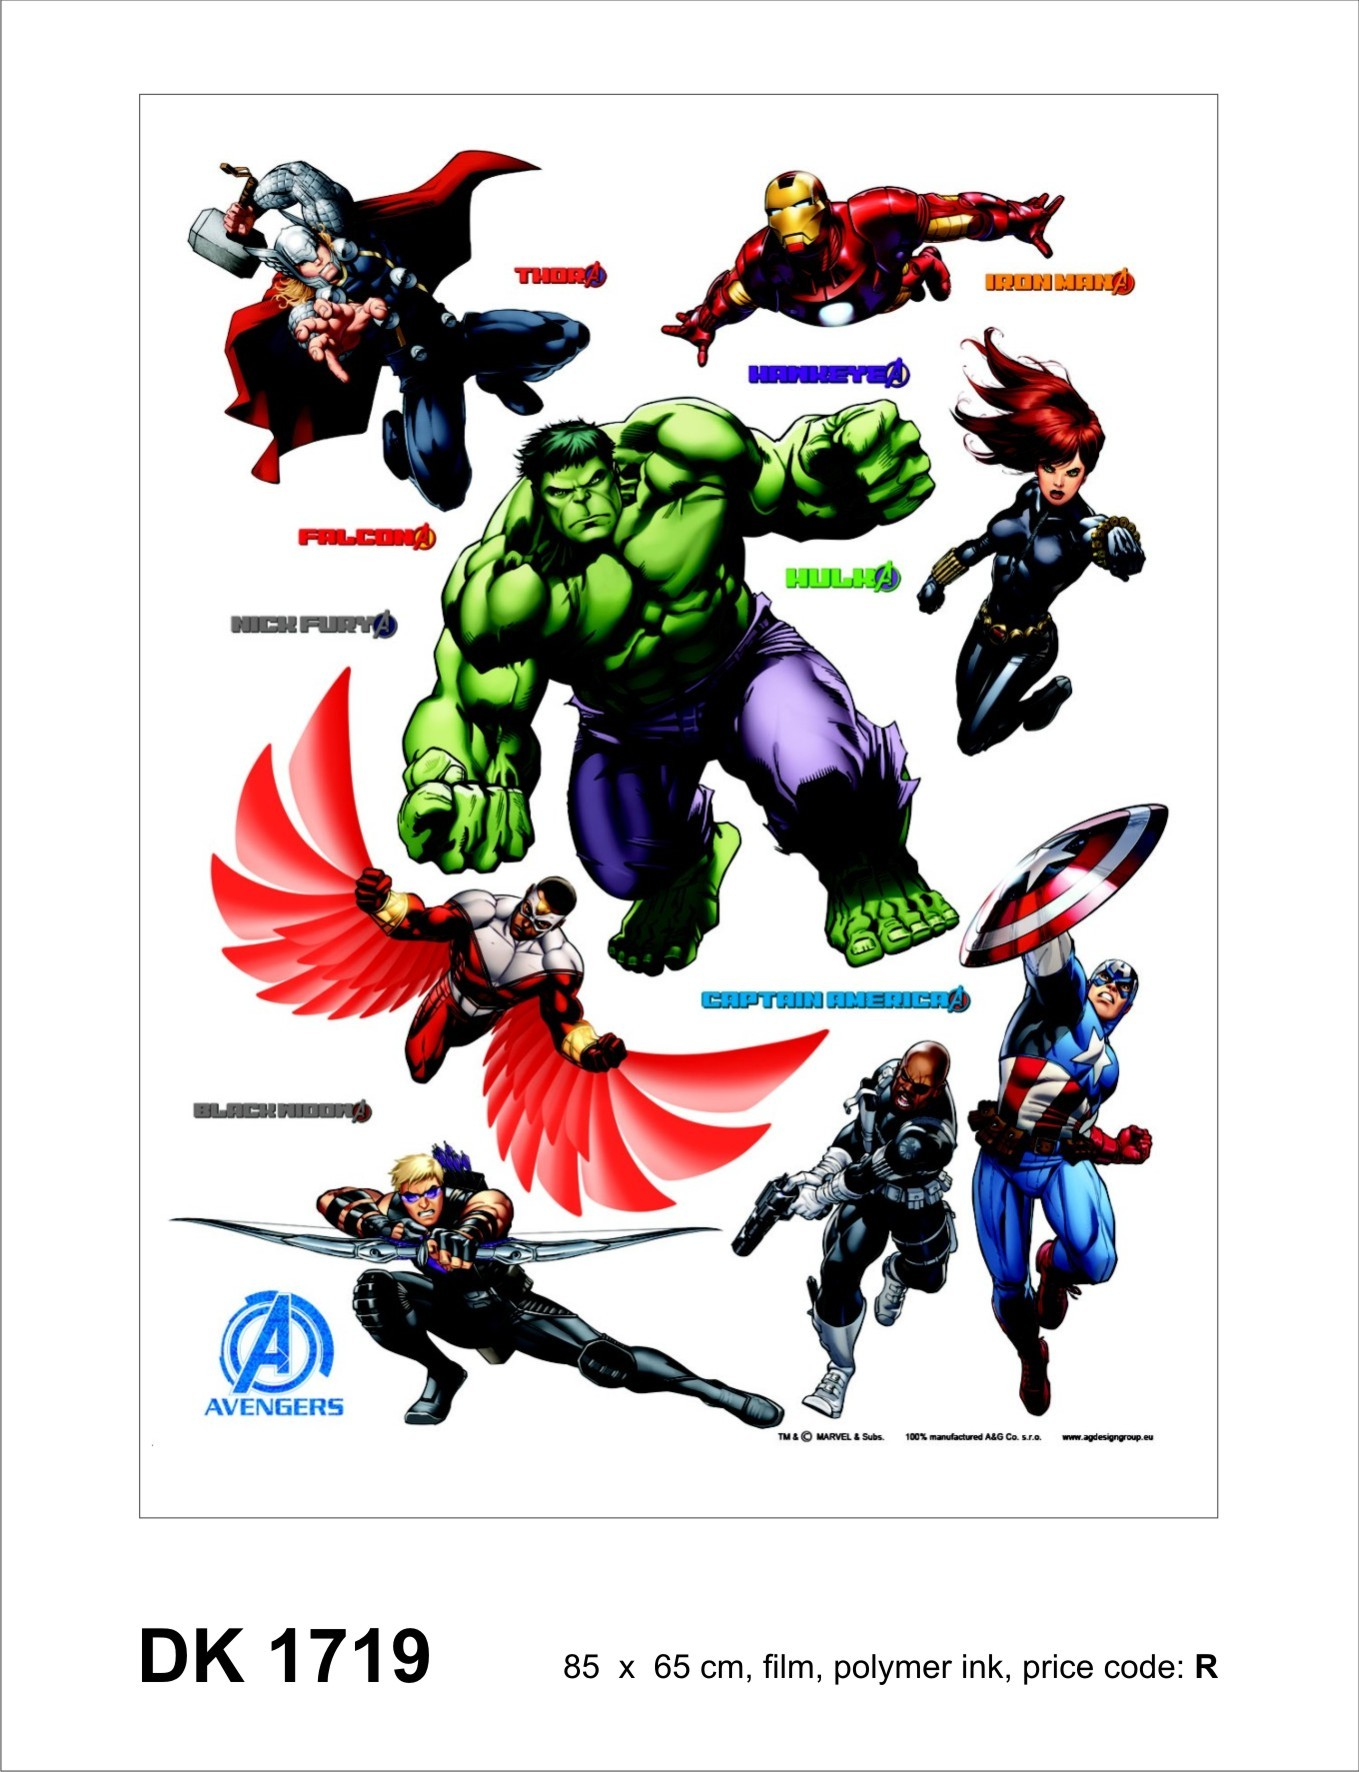 Kinder wandsticker wandtattoo kinderdeko marvel the avengers for Kinder wandsticker